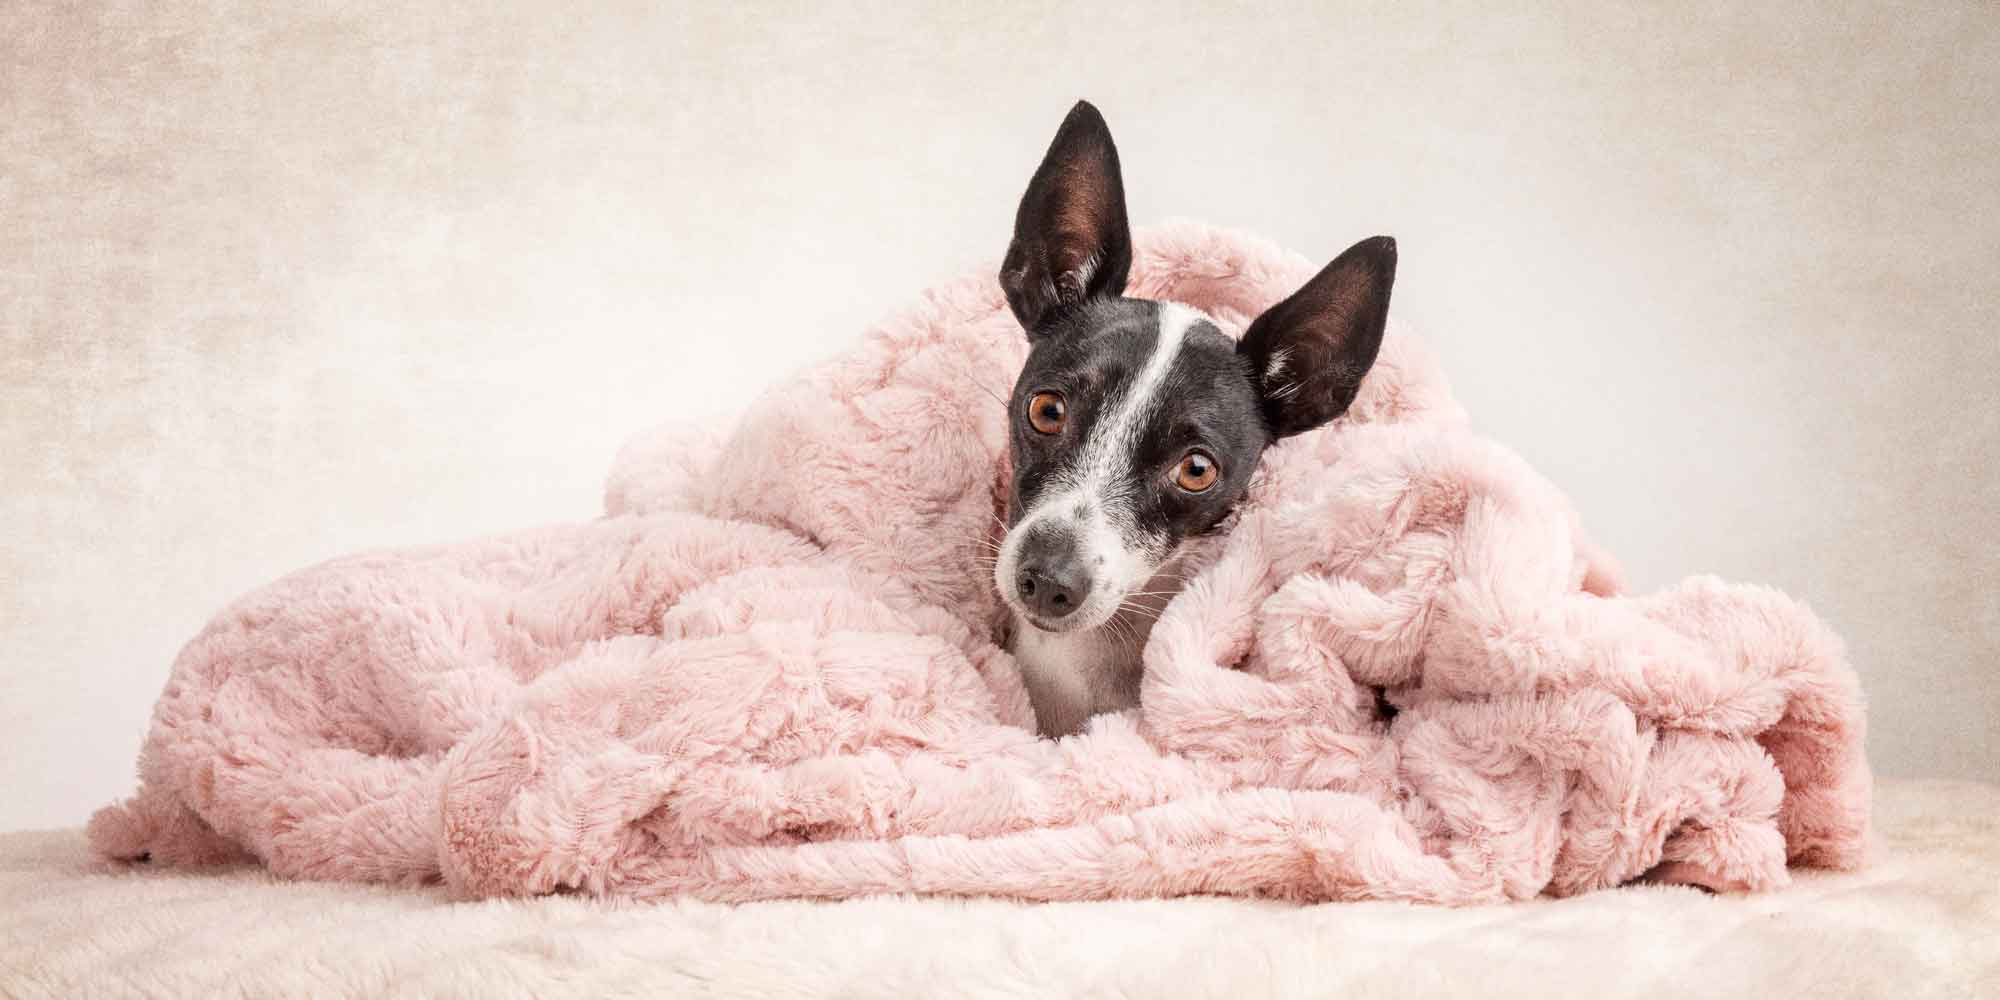 black and white mini fox terrier cross snuggled wrapped in pink blanket